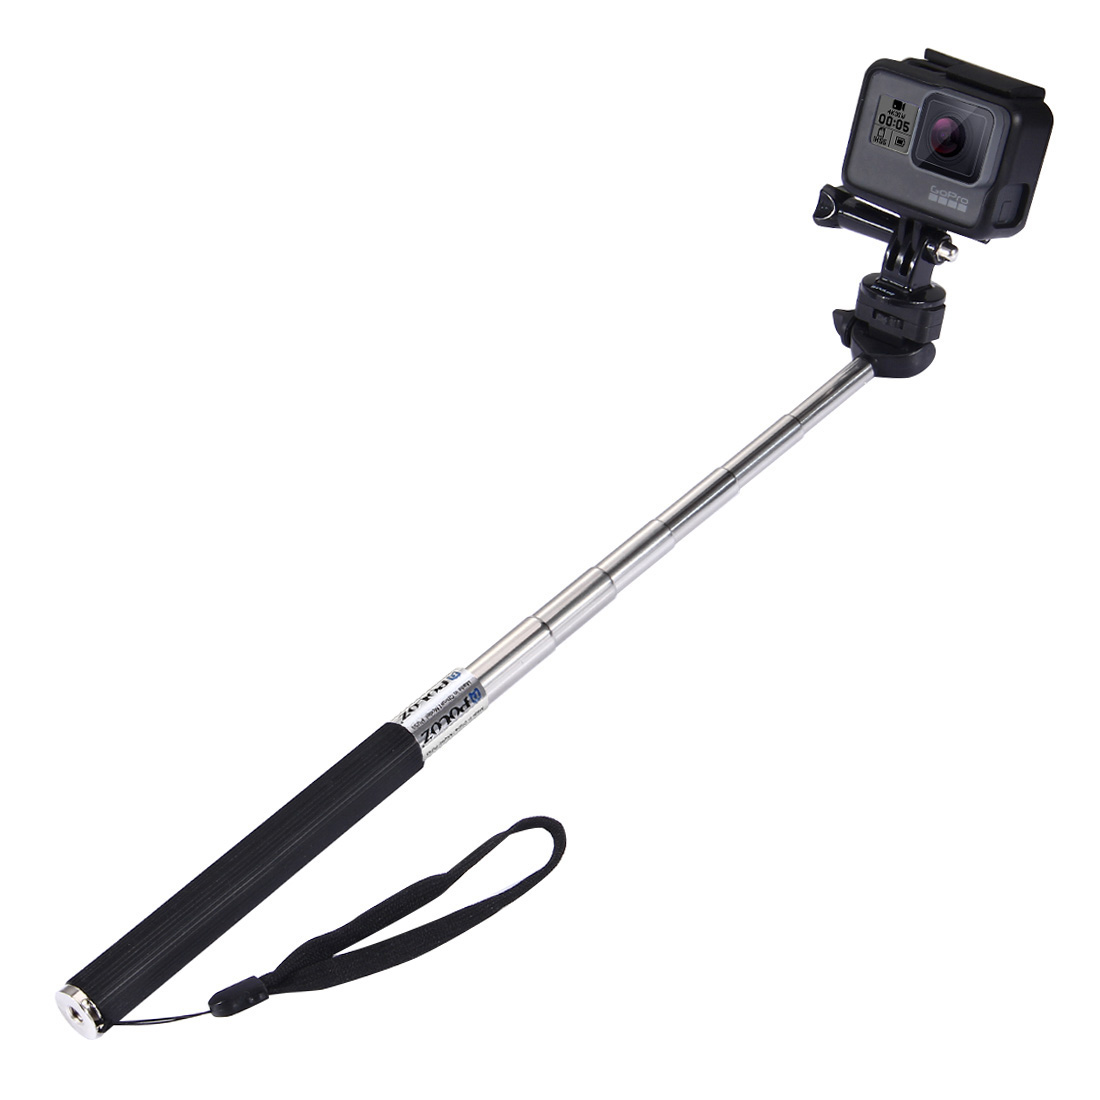 PULUZ PU55 Extendable Handheld Selfie Stick Monopod For